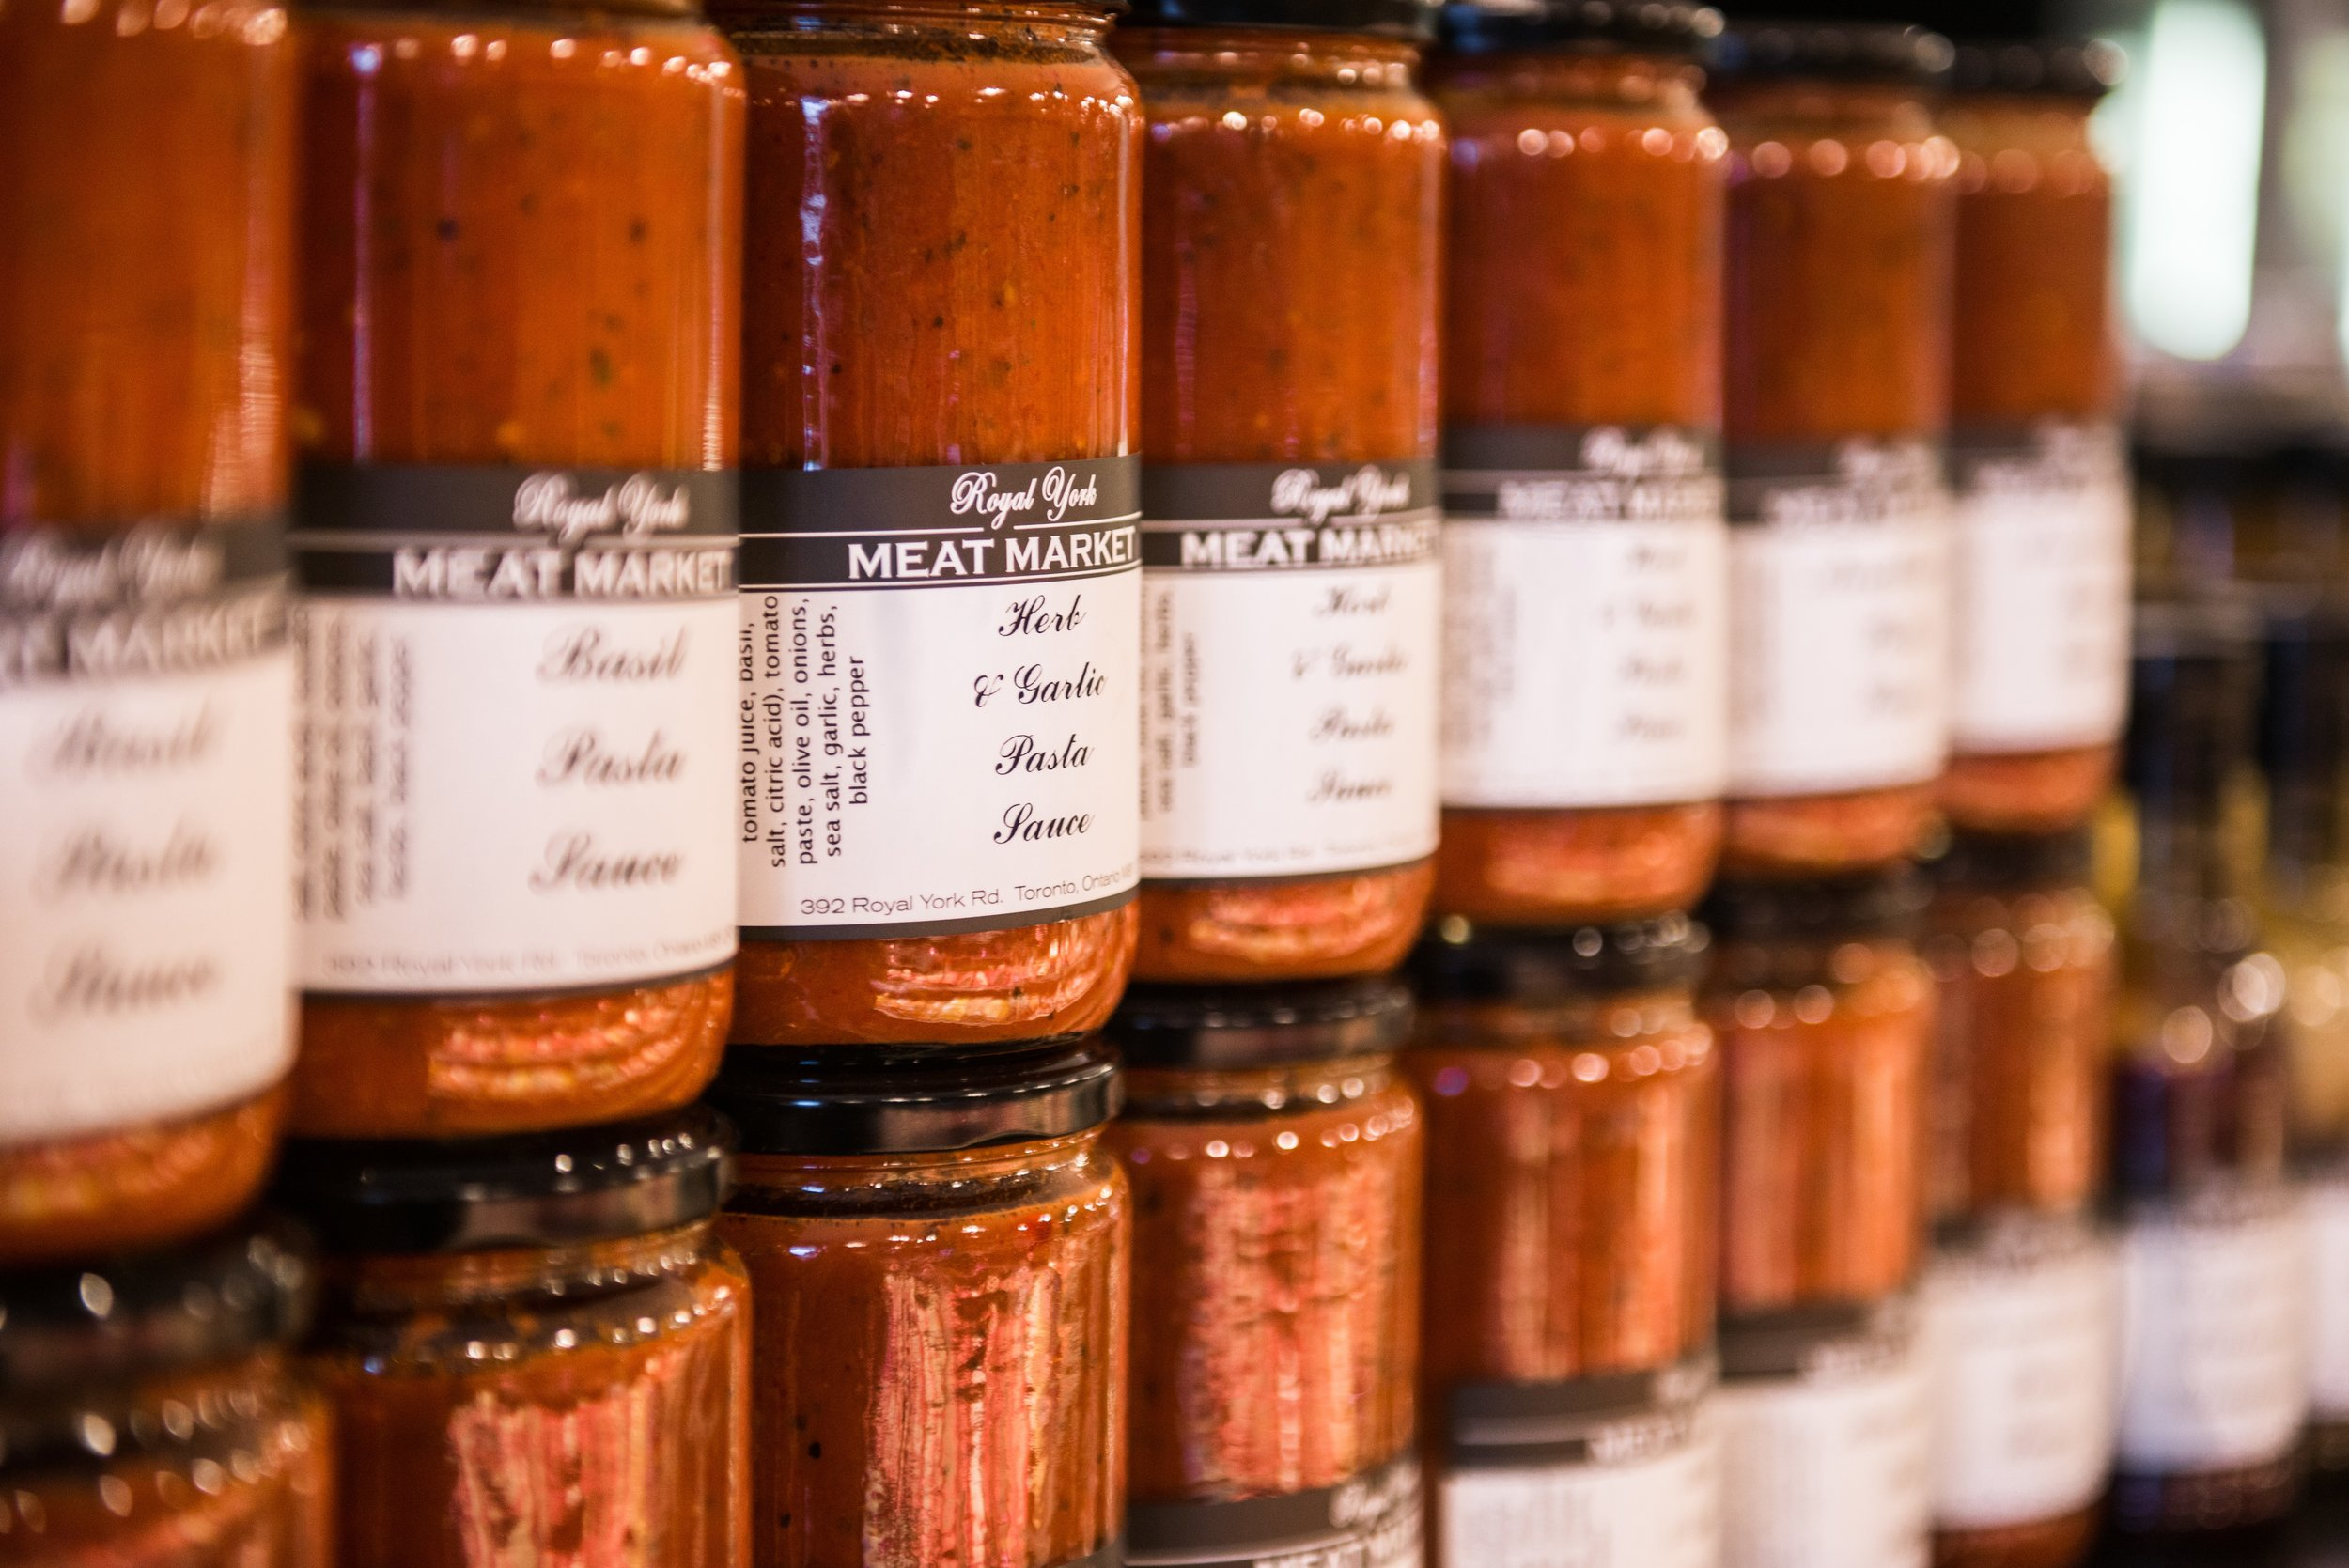 What's spaghetti without some tomato sauce? Whatever you're covering, we got you covered. Come feast your eyes on our wide selection of in house made sauces.